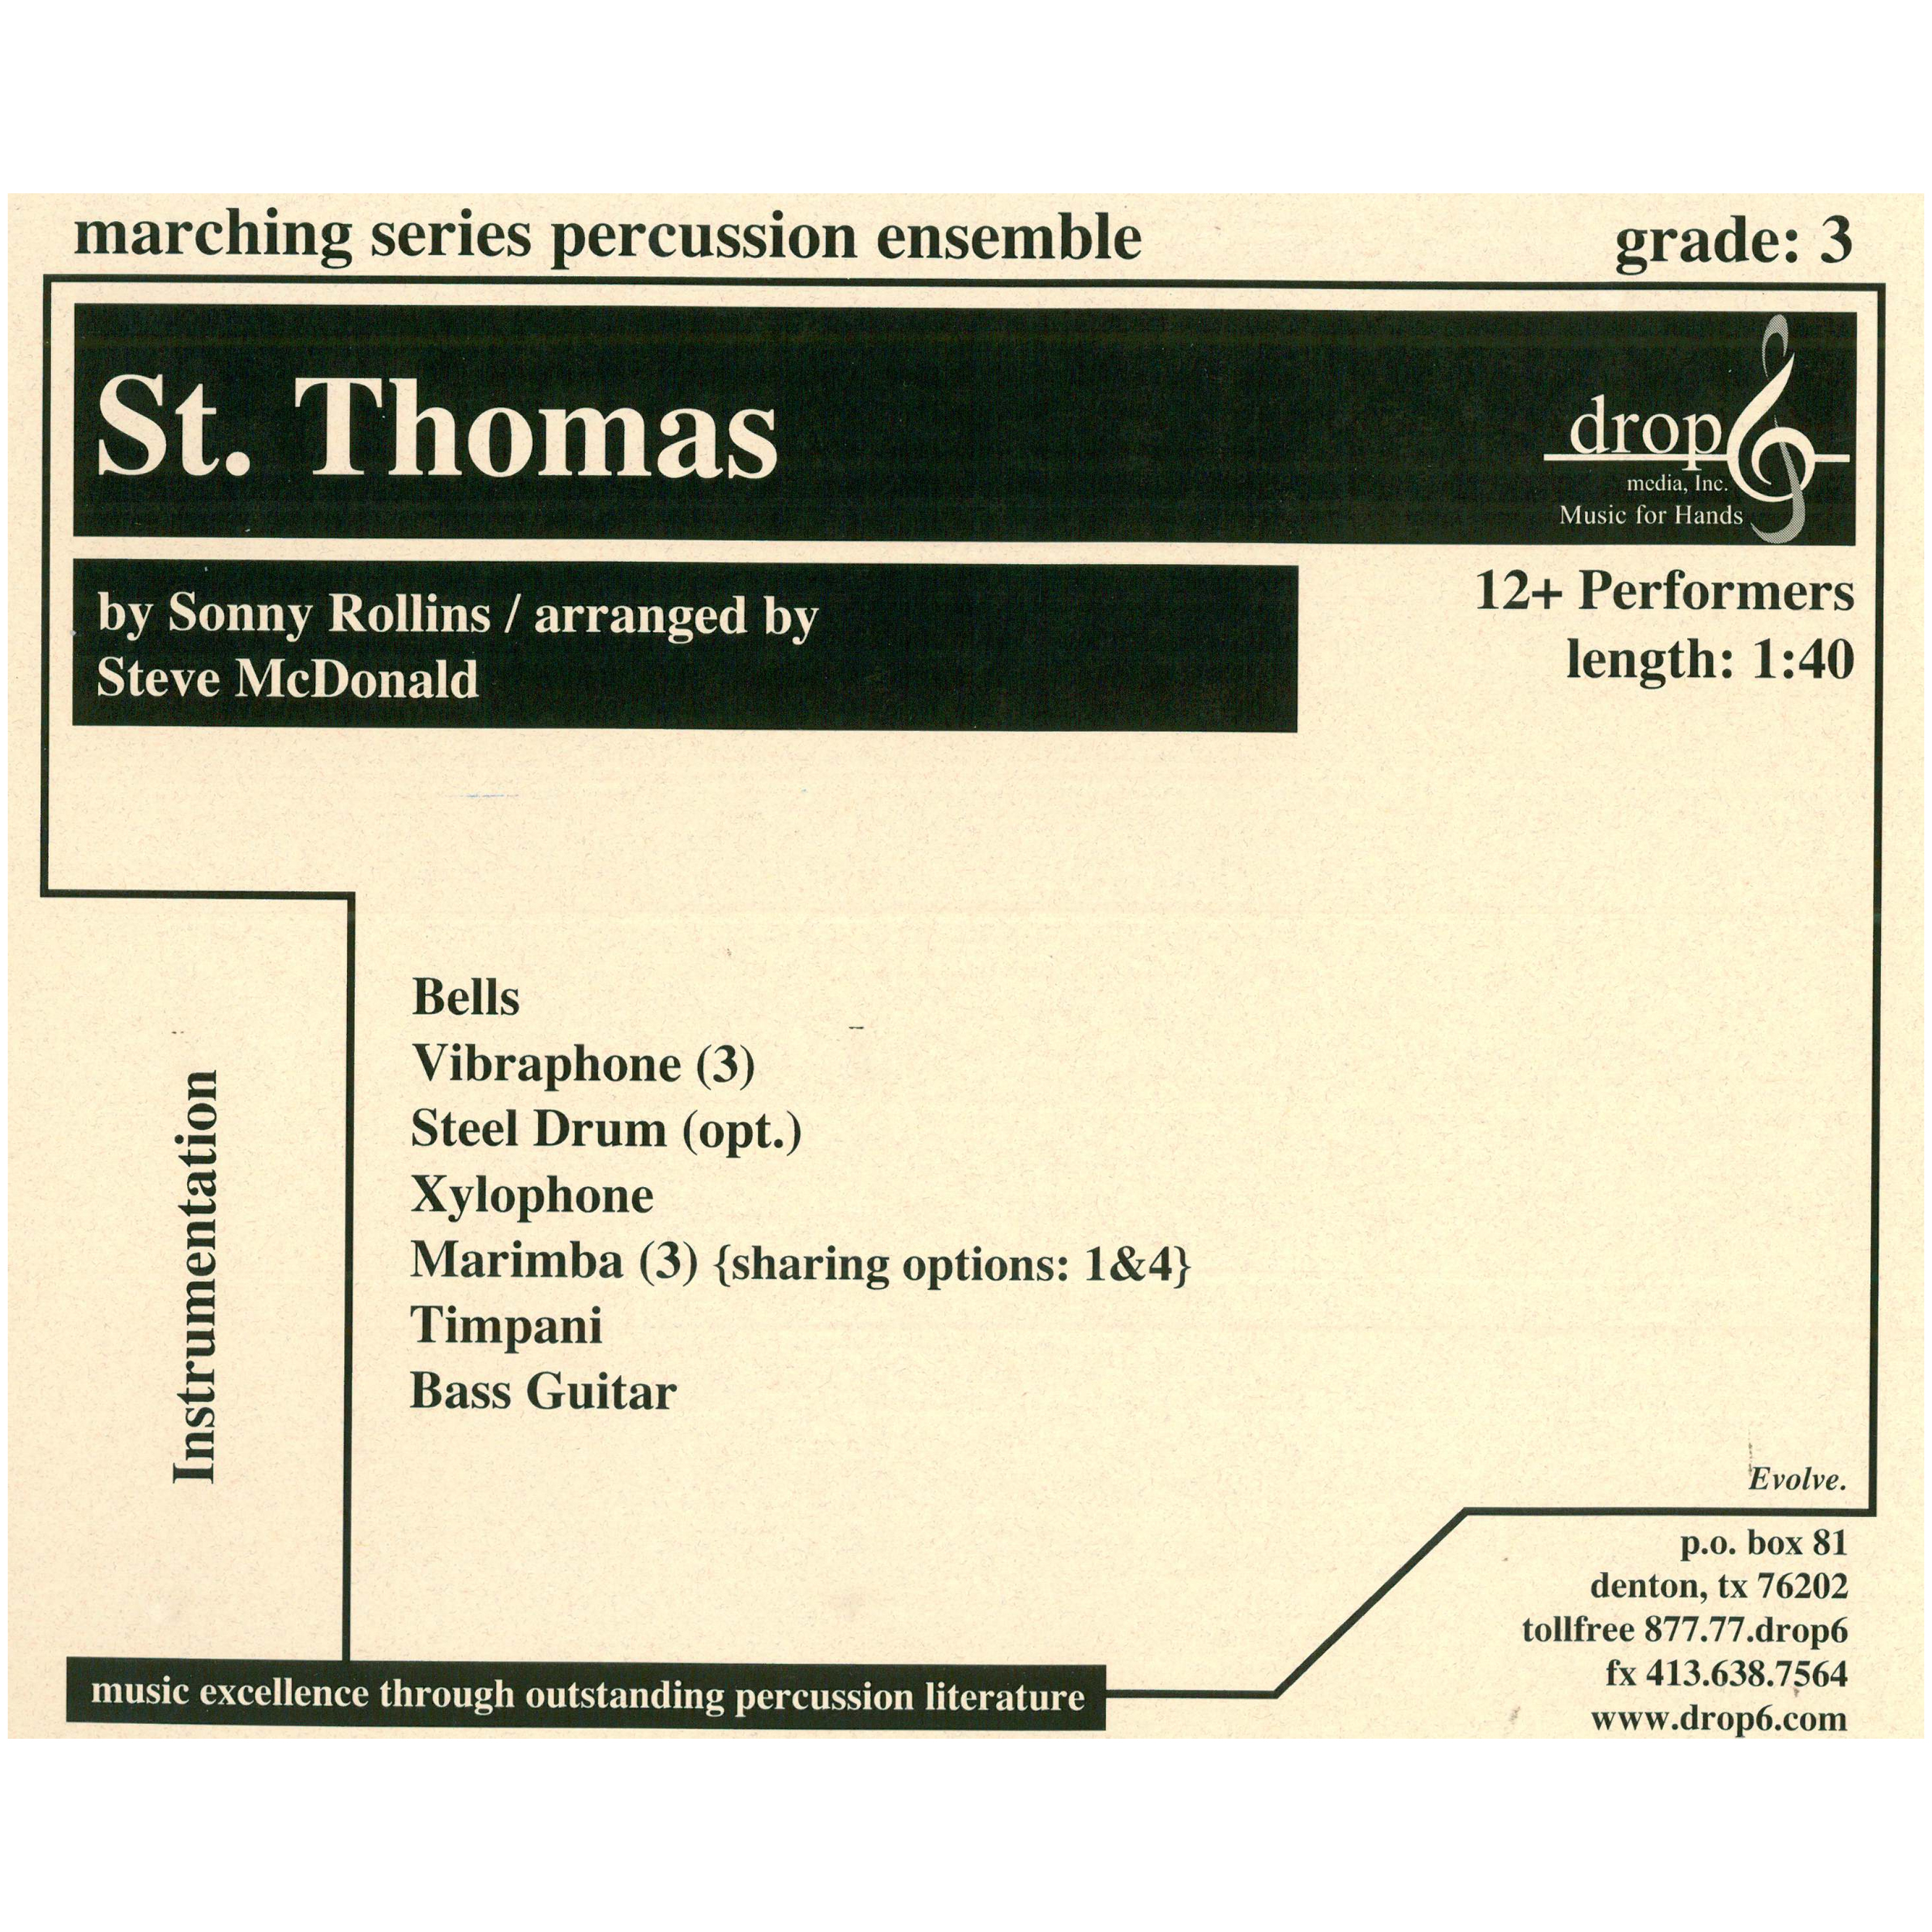 St. Thomas by Sonny Rollins arr. McDonald